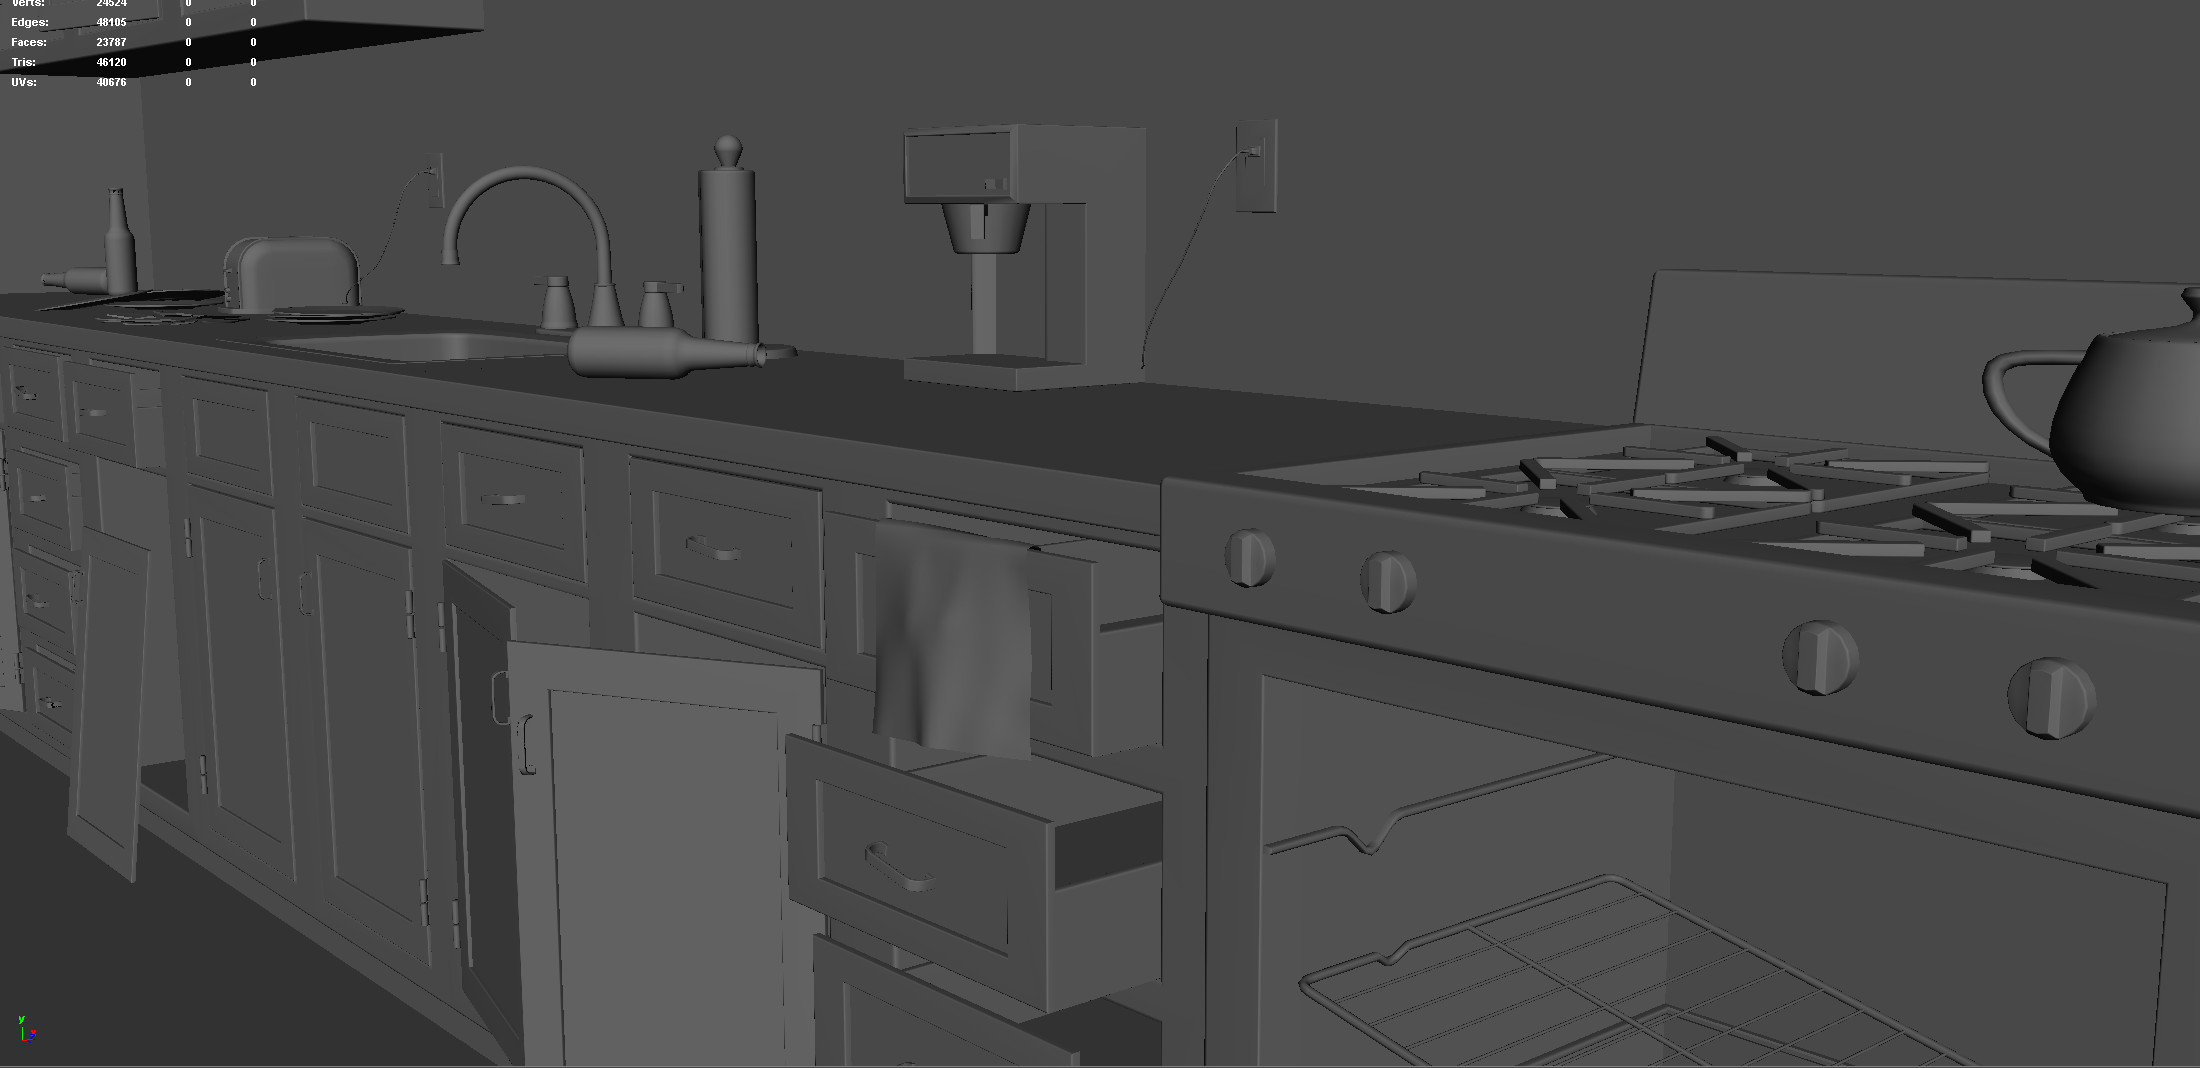 Cafeteria Counter 2 (Modeling Stage)